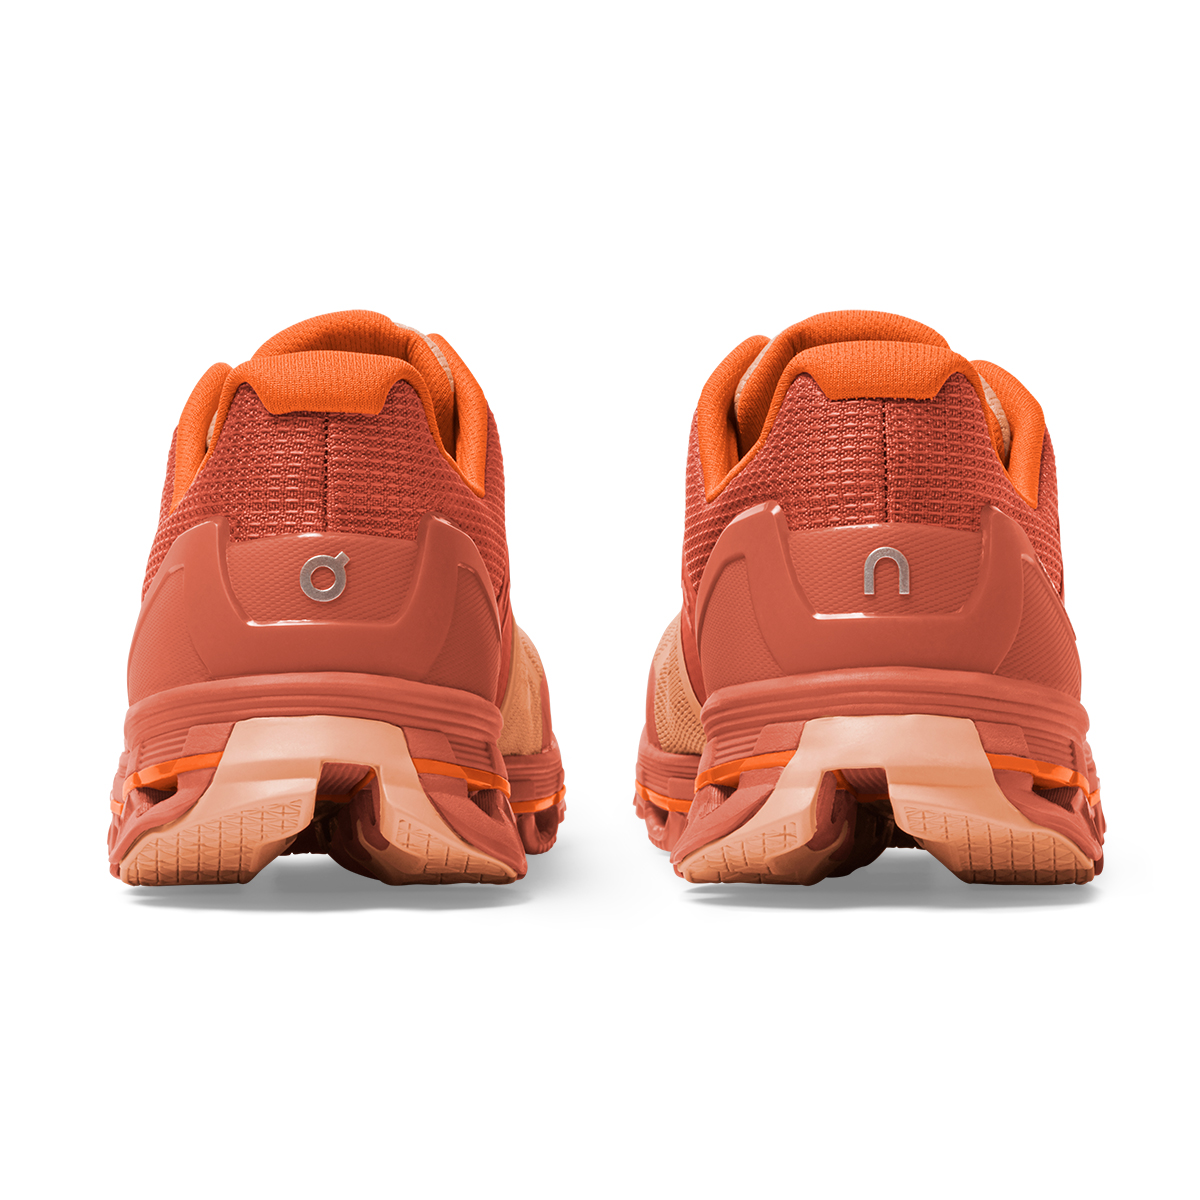 Women's On Cloudace Running Shoe - Color: Blush/Orange - Size: 5 - Width: Regular, Blush/Orange, large, image 4